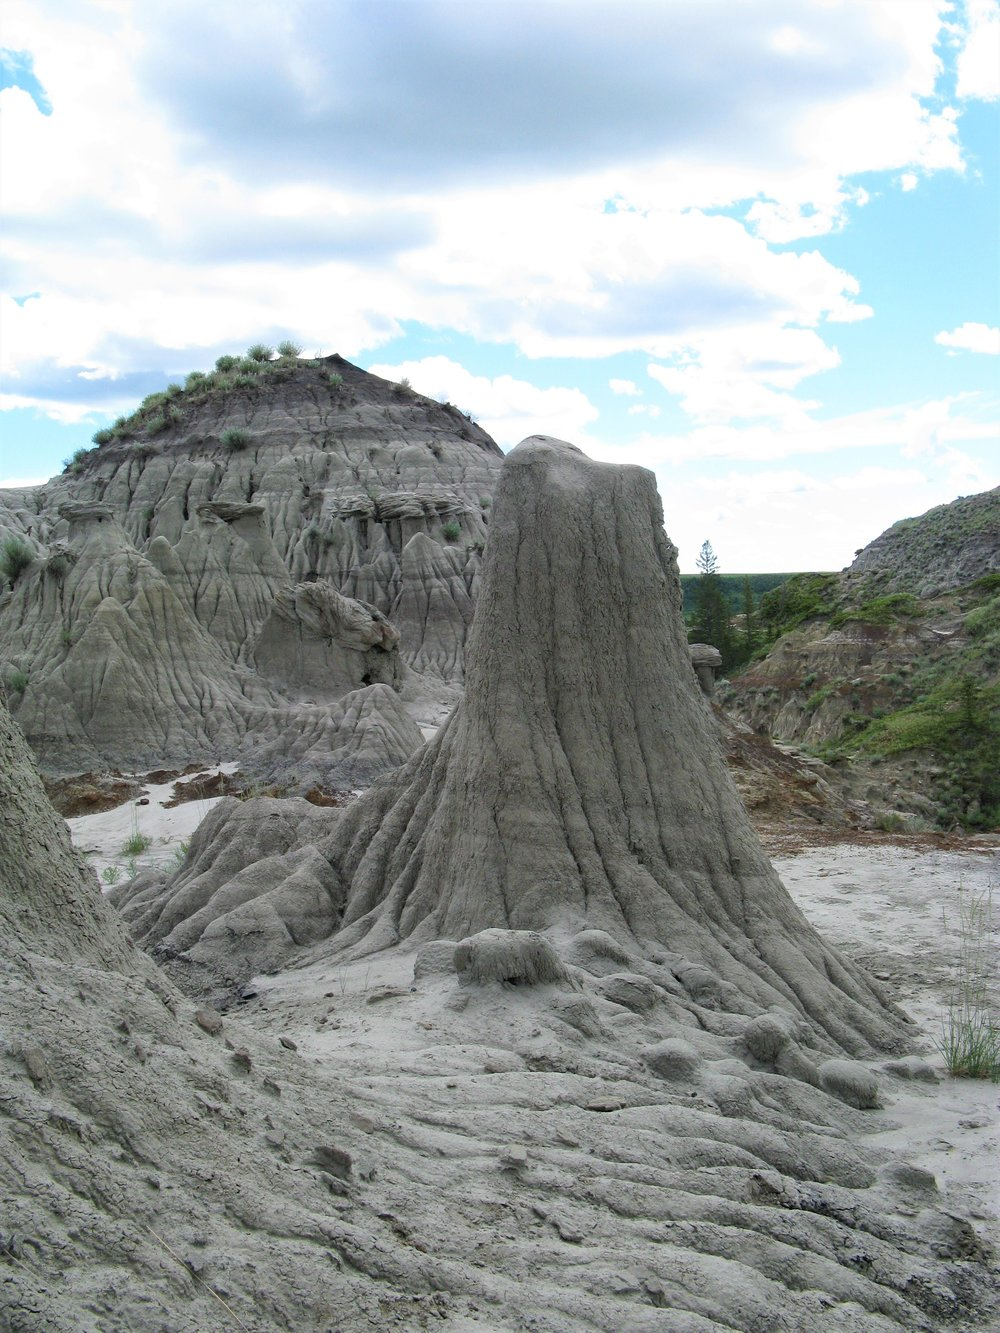 badlands image.jpg